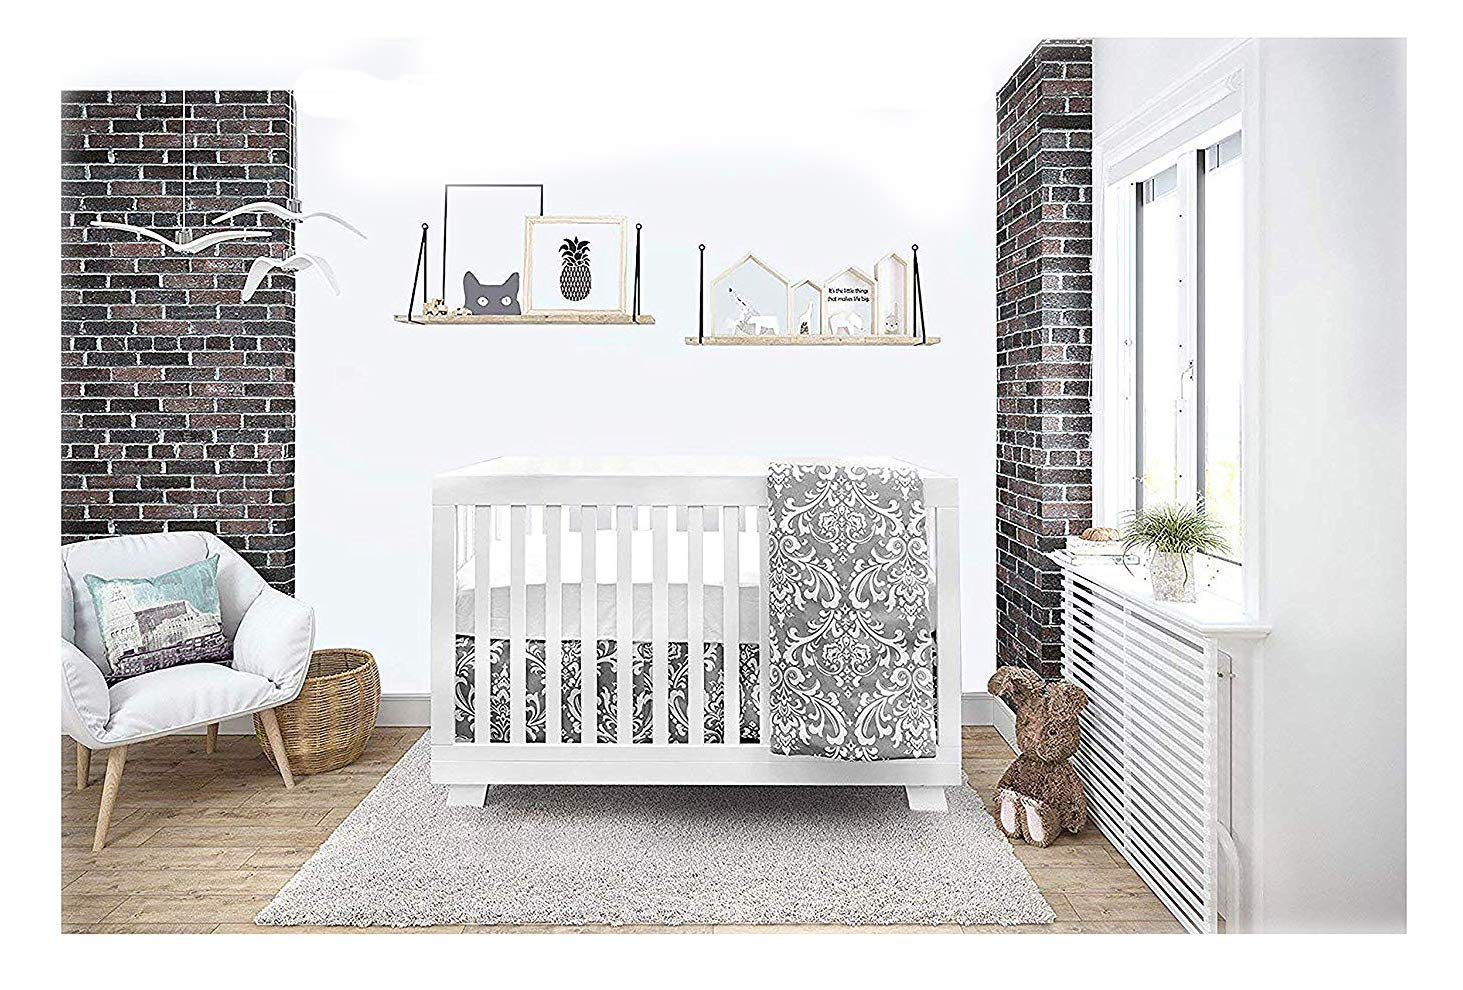 BOOBEYEH & DESIGN Baby Crib Bedding 4 Piece Set, Gray and White Floral Design, Includes Fitted Sheet, Crib Comforter, Comforter Cover, Skirt, Perfect for Baby Girls and Boys